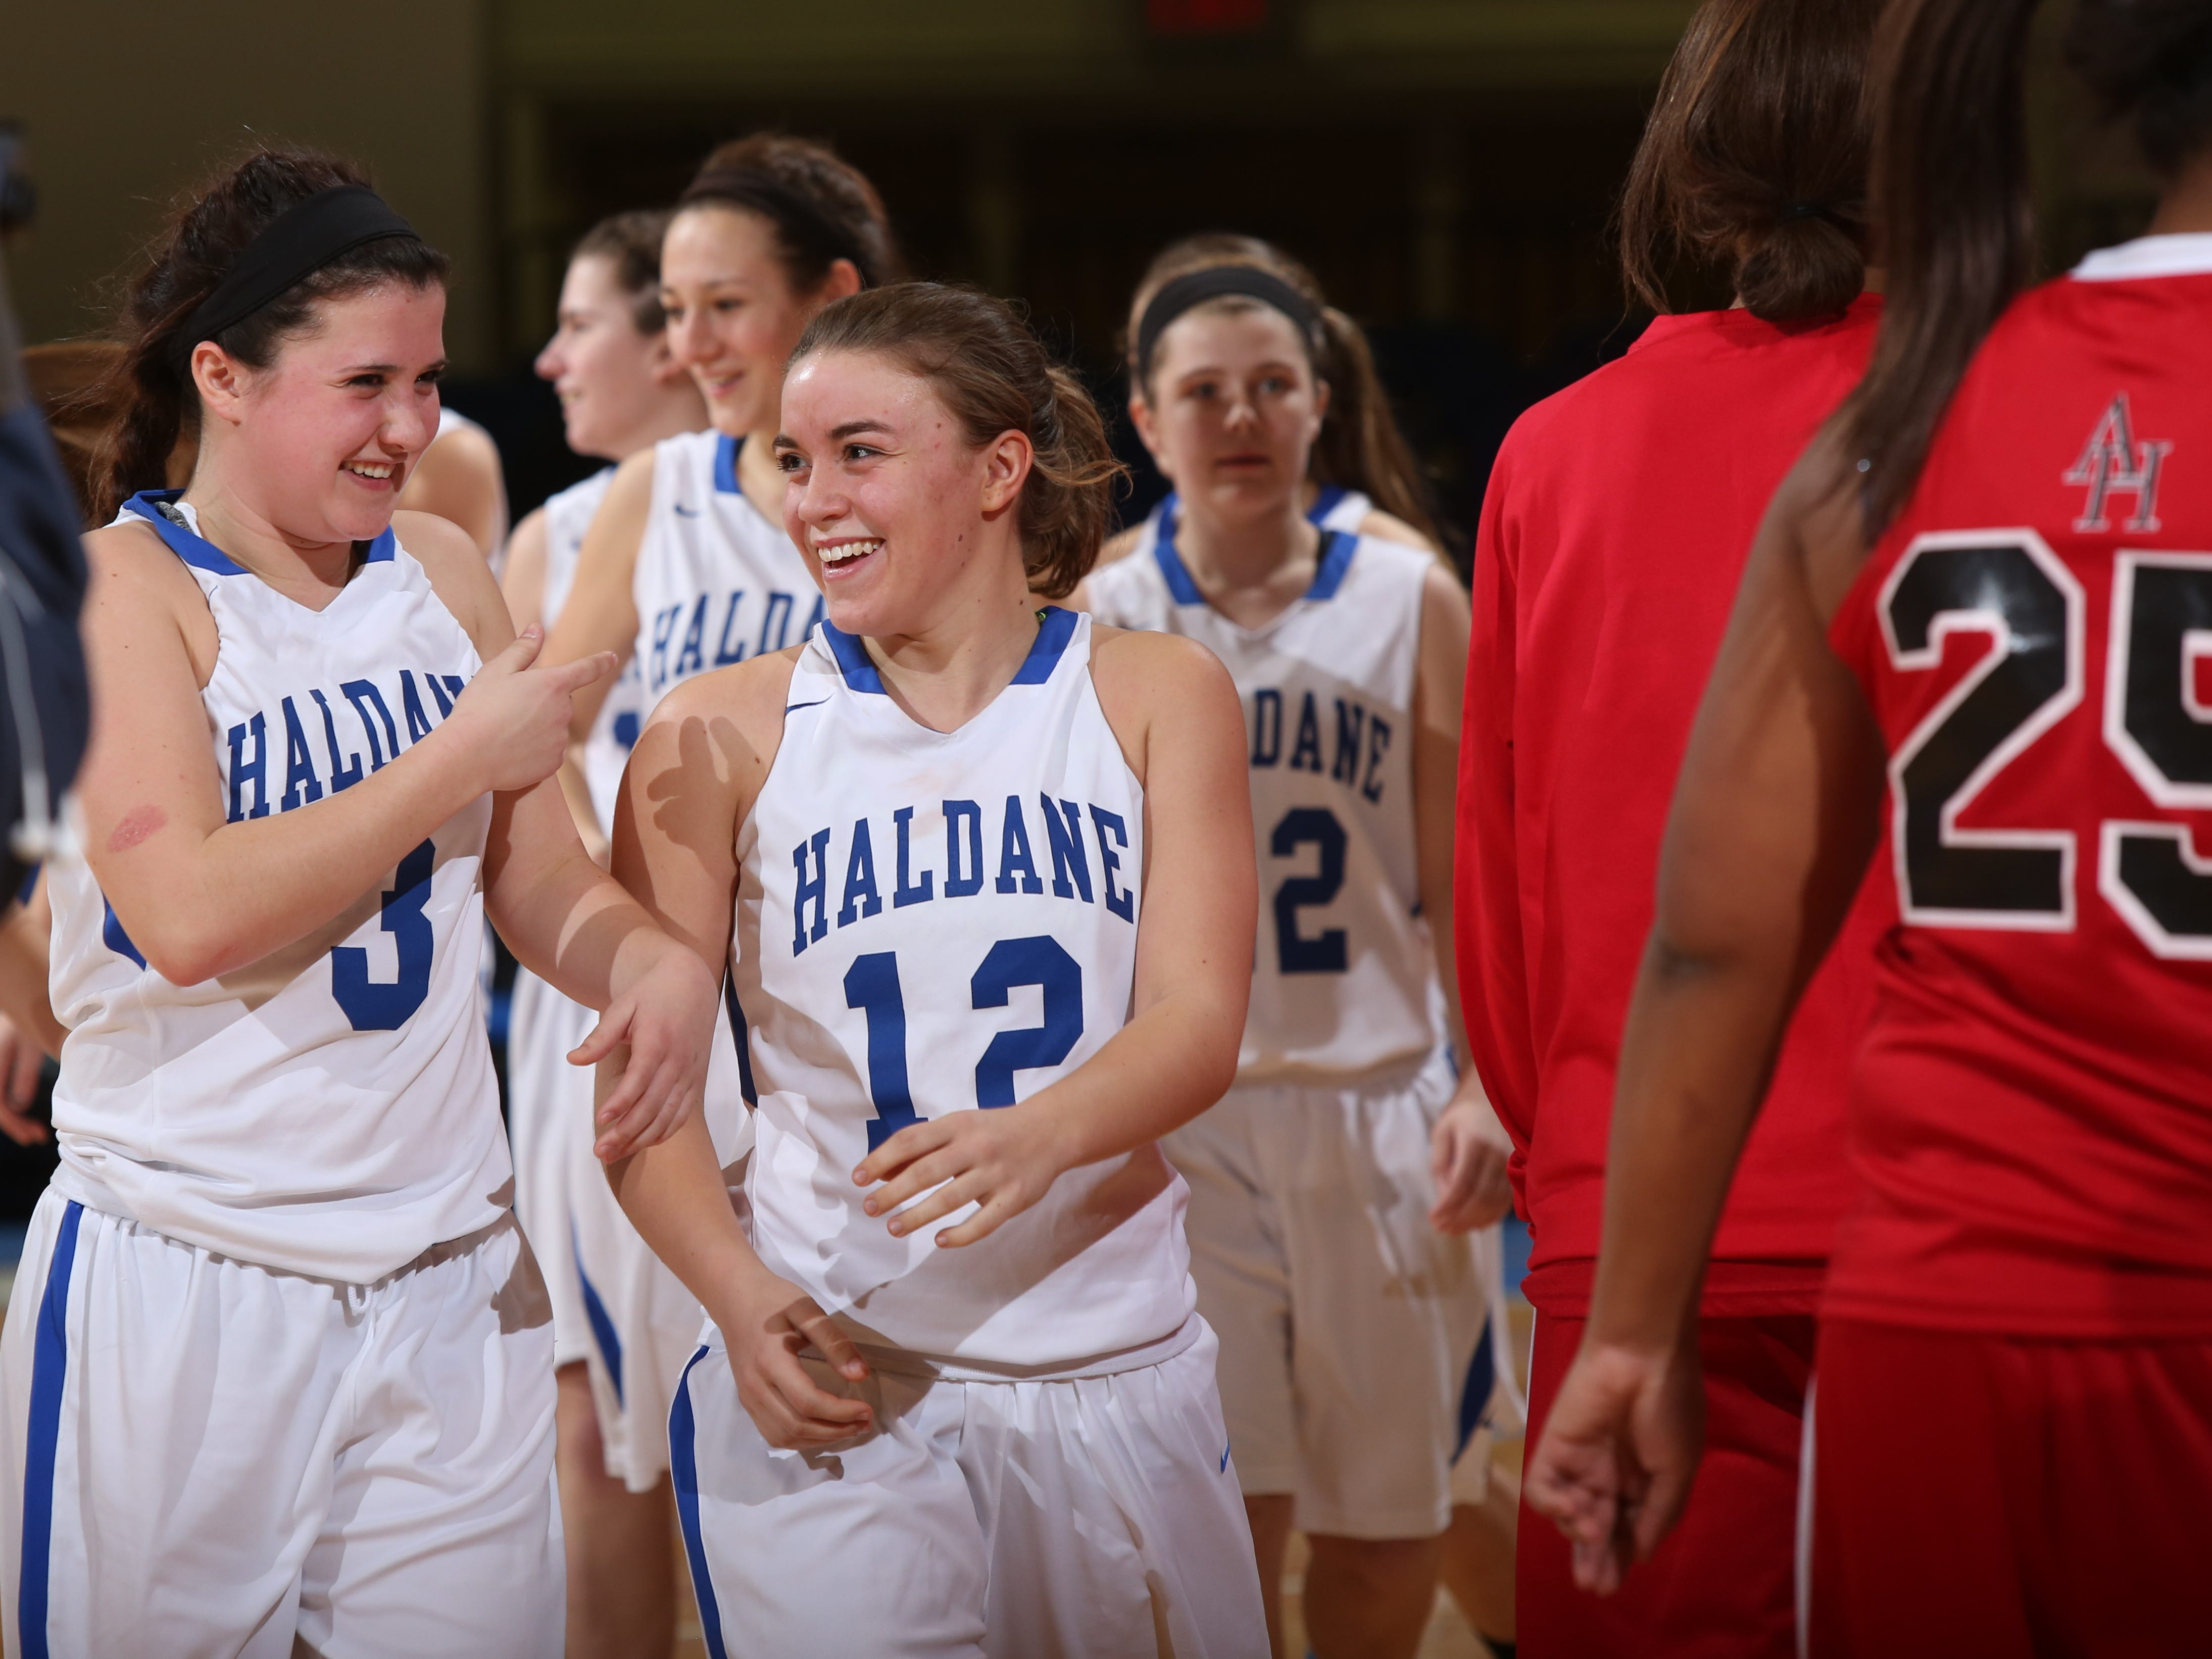 No.1 Haldane's Hannah Monteleone (3) and Marissa Lisikatos (12) celebrates their 60-38 victory over No. 2 Hamilton during the Class C girls basketball championship at The Westchester County Center in White Plains Feb. 28, 2015.